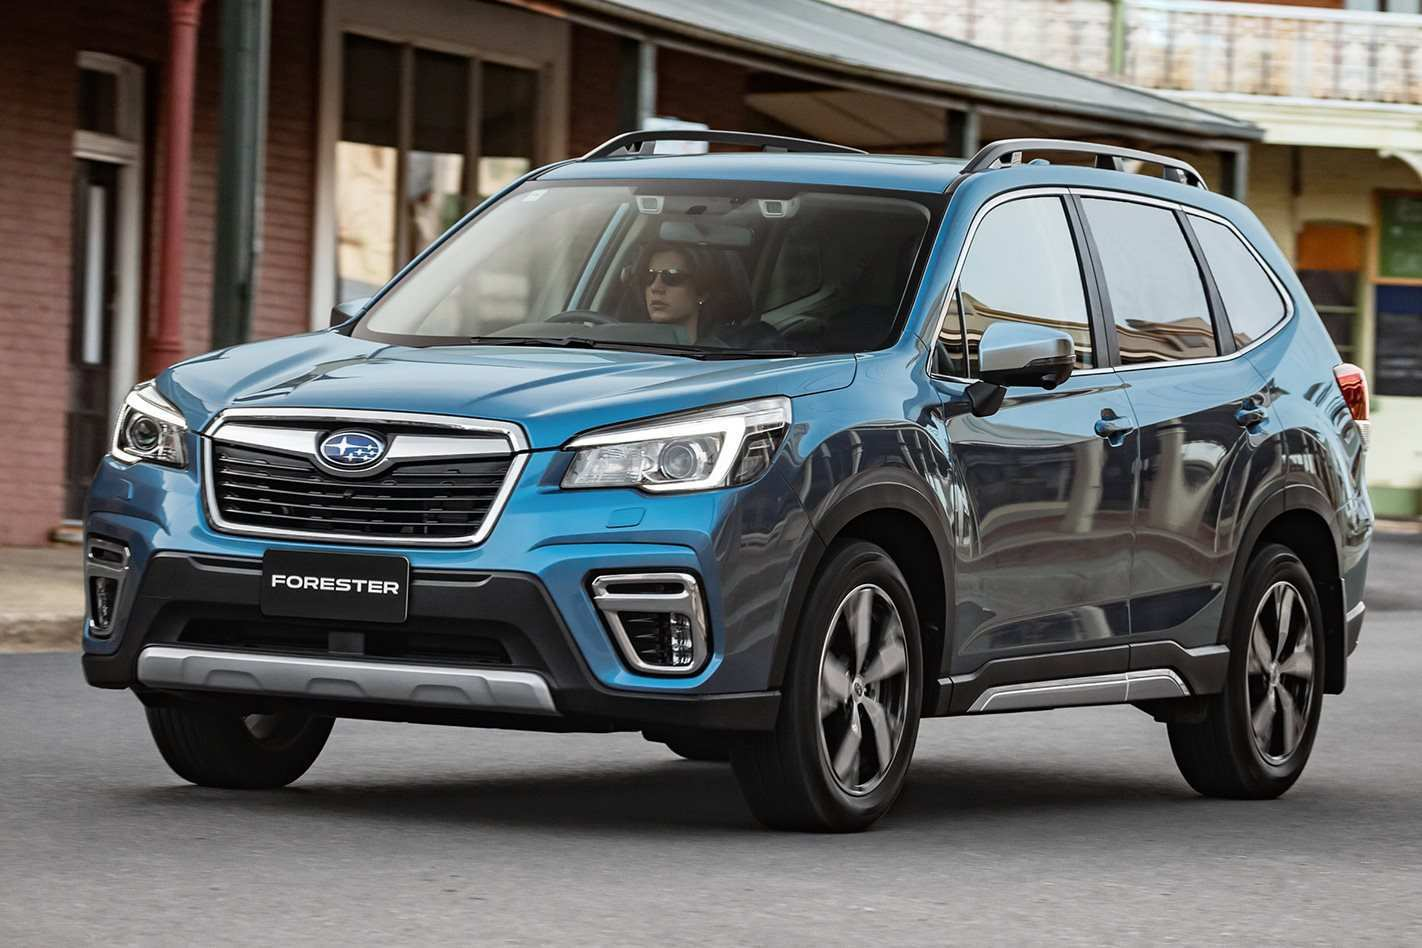 71 All New The 2019 Subaru Forester Vs Jeep Cherokee Review Engine with The 2019 Subaru Forester Vs Jeep Cherokee Review